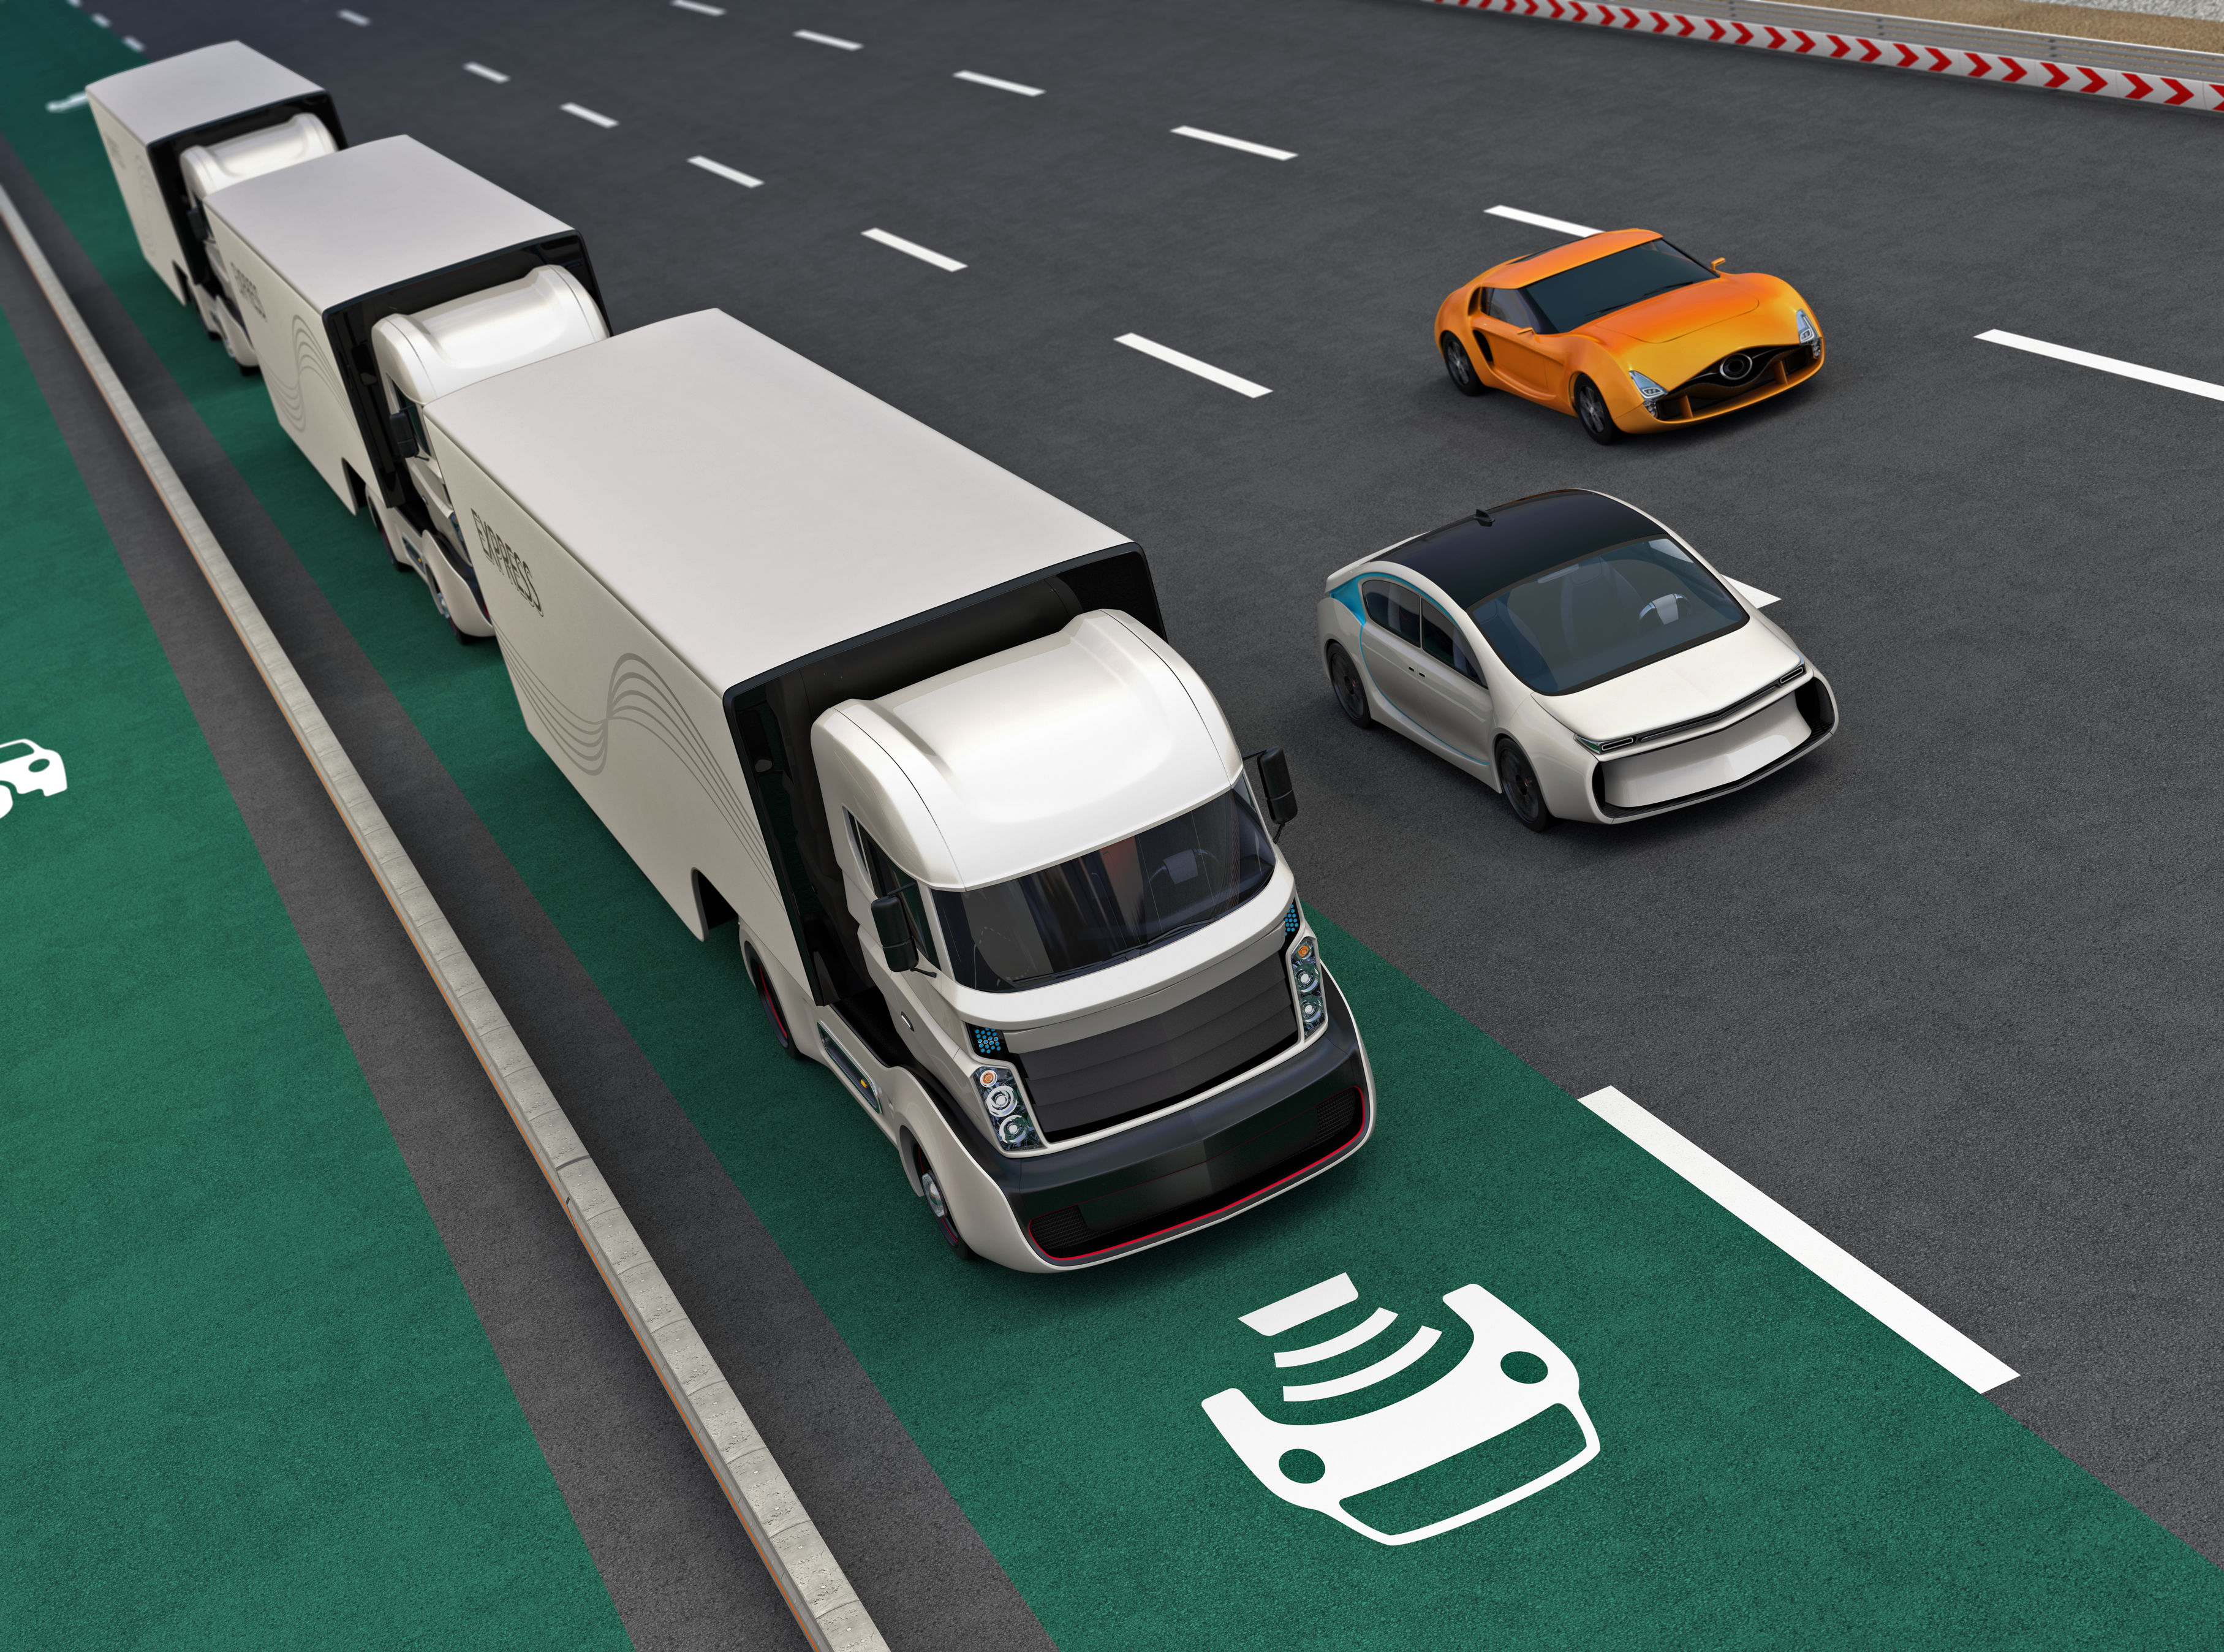 """Coming soon to a highway near you: truck platooning – """"Platooning involves a number of trucks closely following one another, connected using vehicle-to-vehicle communication… trucks can follow each other closely, leading to better fuel efficiency, perhaps up to 15%."""""""